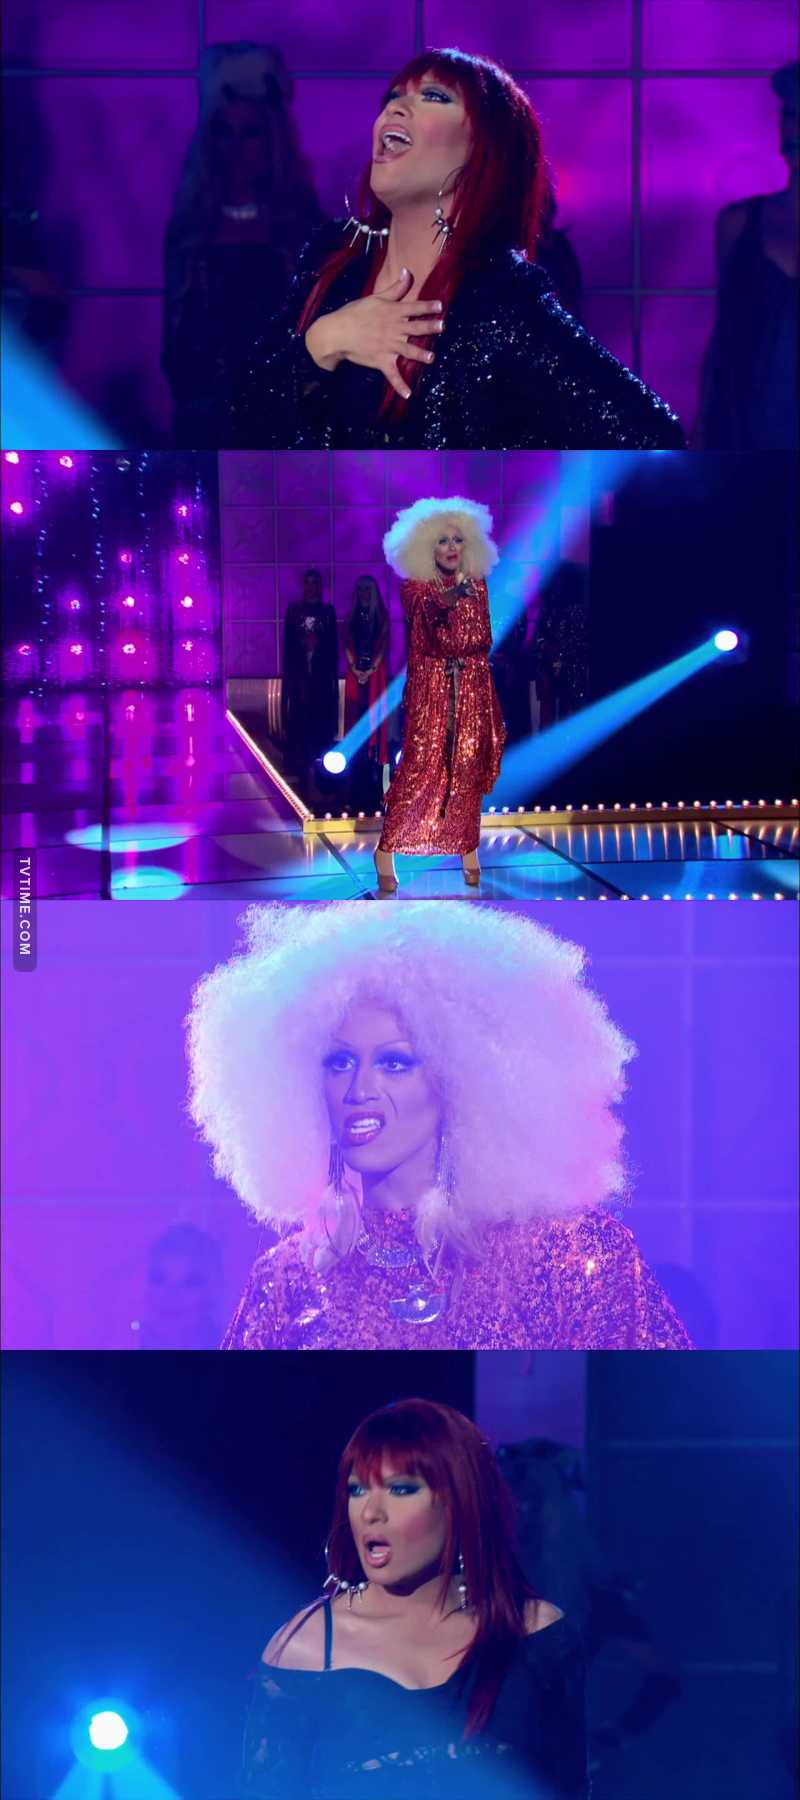 WORST LIPSYINC OF THE ENTIRE SHOW OH MY GOD, HOW DARE YOU DISRESPECT BRITNEY LIKE THAT?   Ru, you made the right call